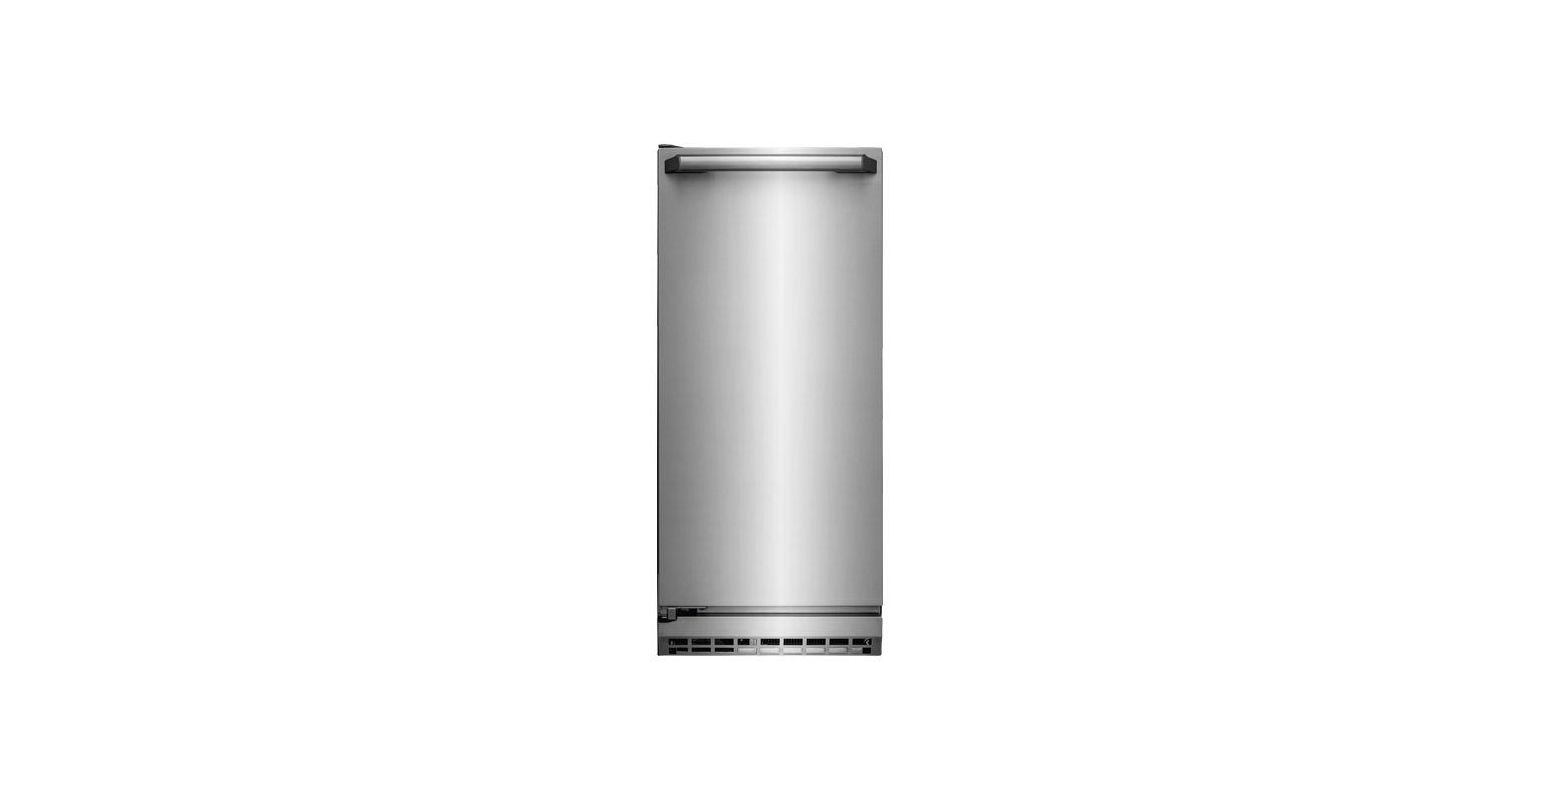 Electrolux UL15IM20 15 Inch Wide 30 Lbs. Capacity Built-In Ice Maker with Clear photo